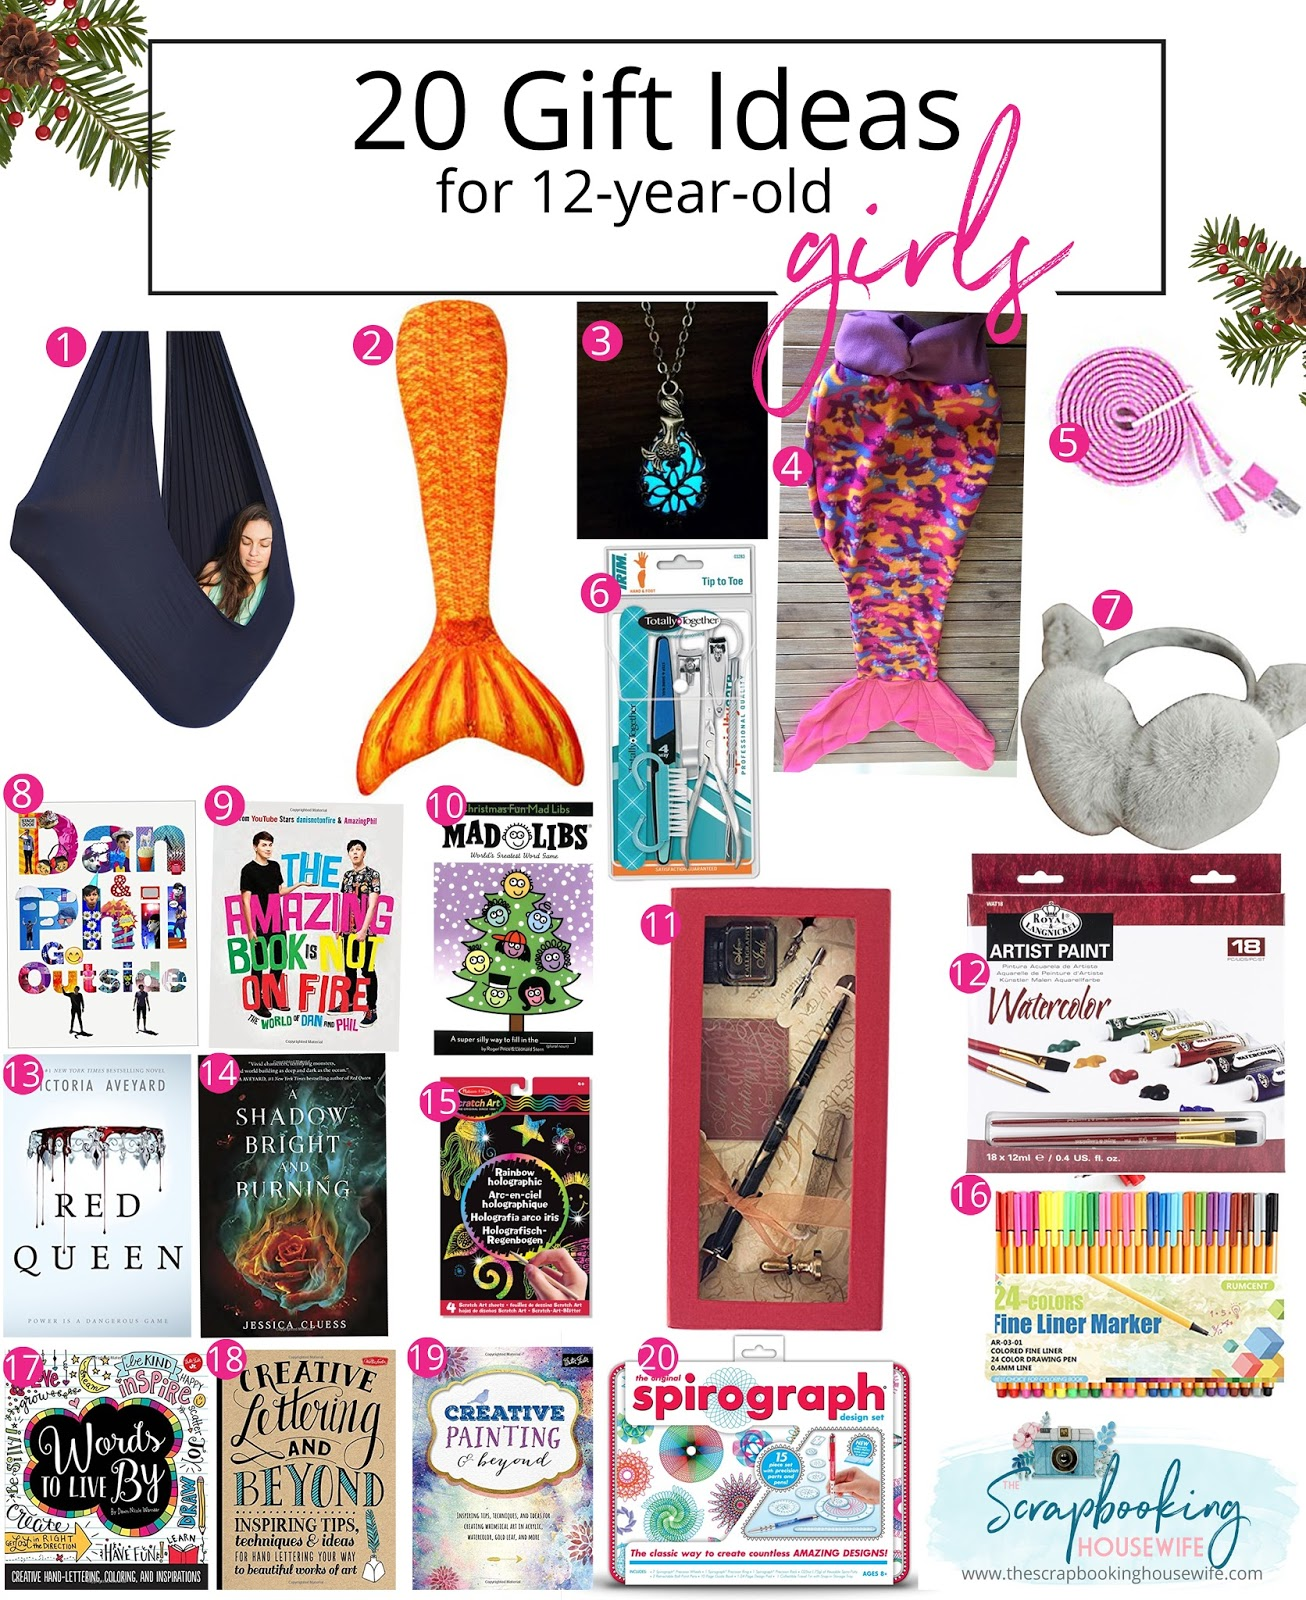 Ellabella Designs 20 Gift Ideas For 12 Year Old Tween Girls Guide Birthday